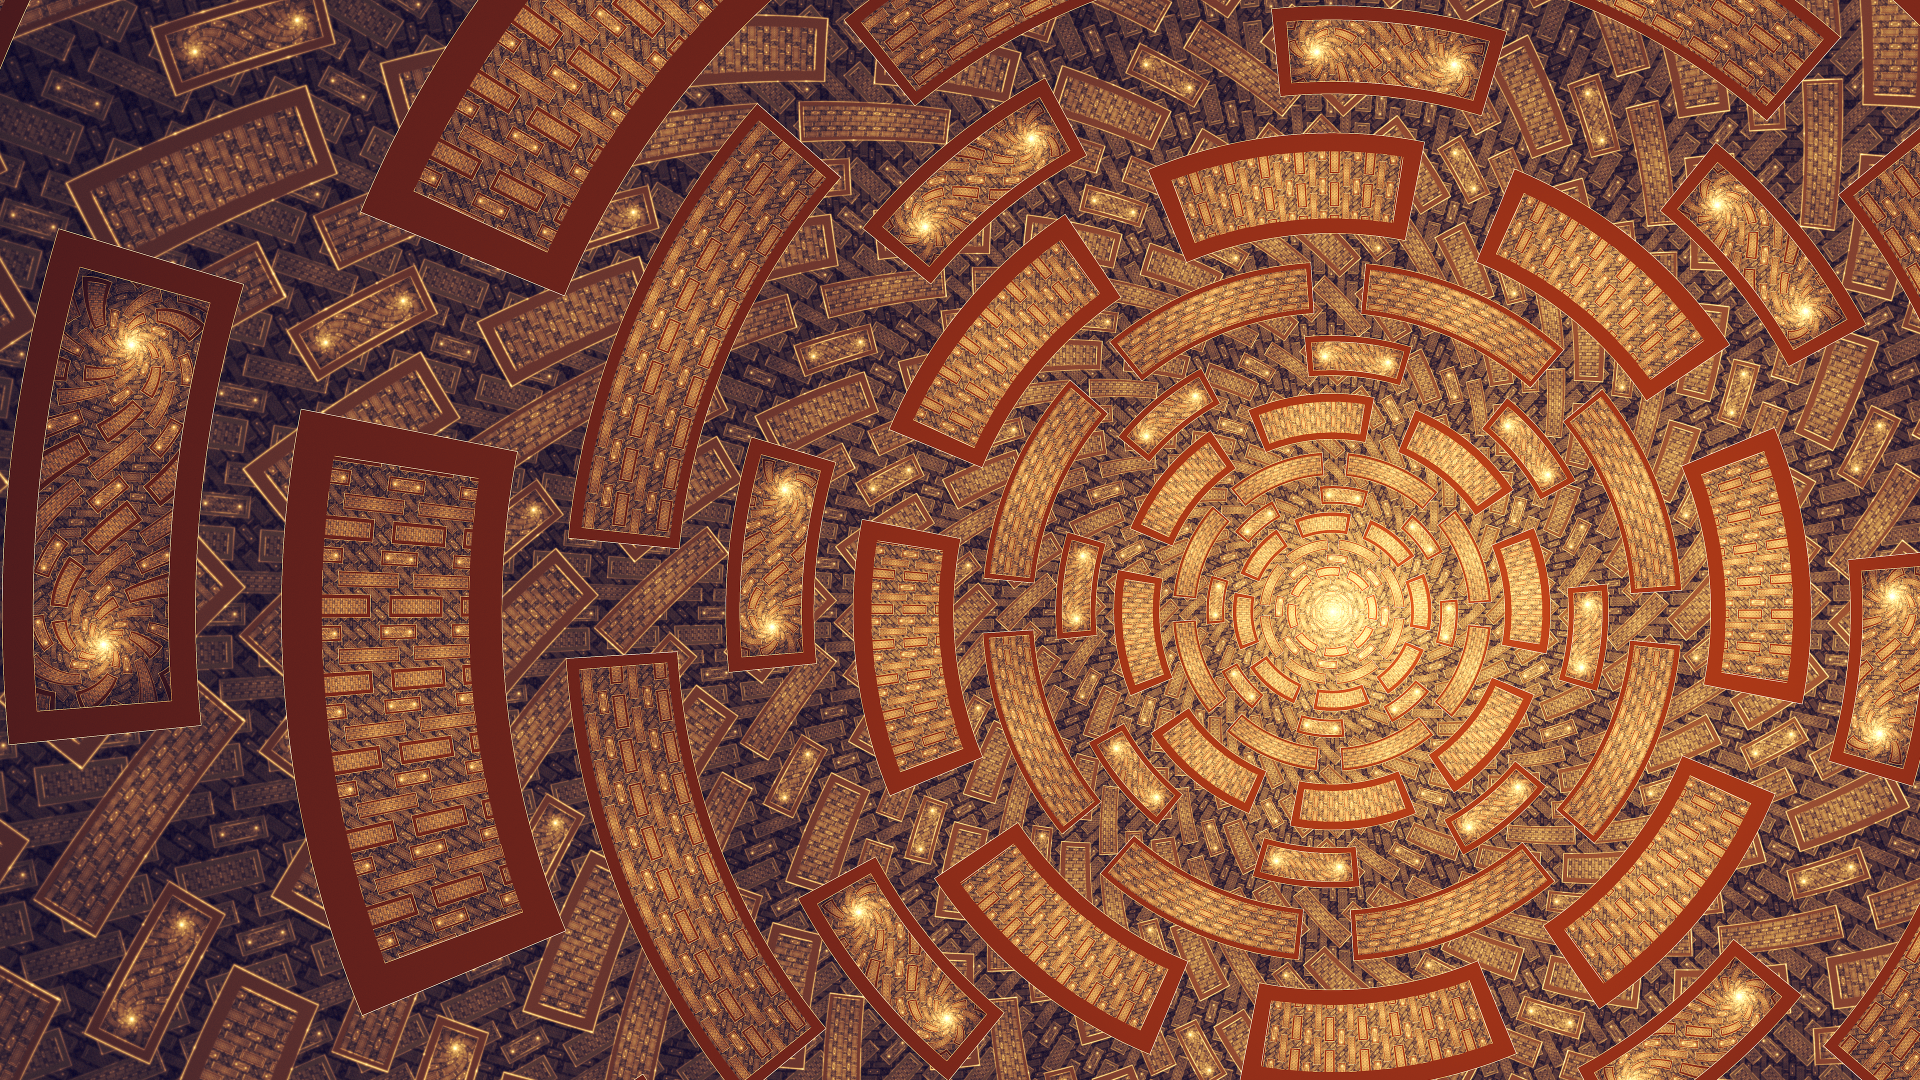 Abstract - Fractal  Artistic Tunnel Abstract Digital Wallpaper